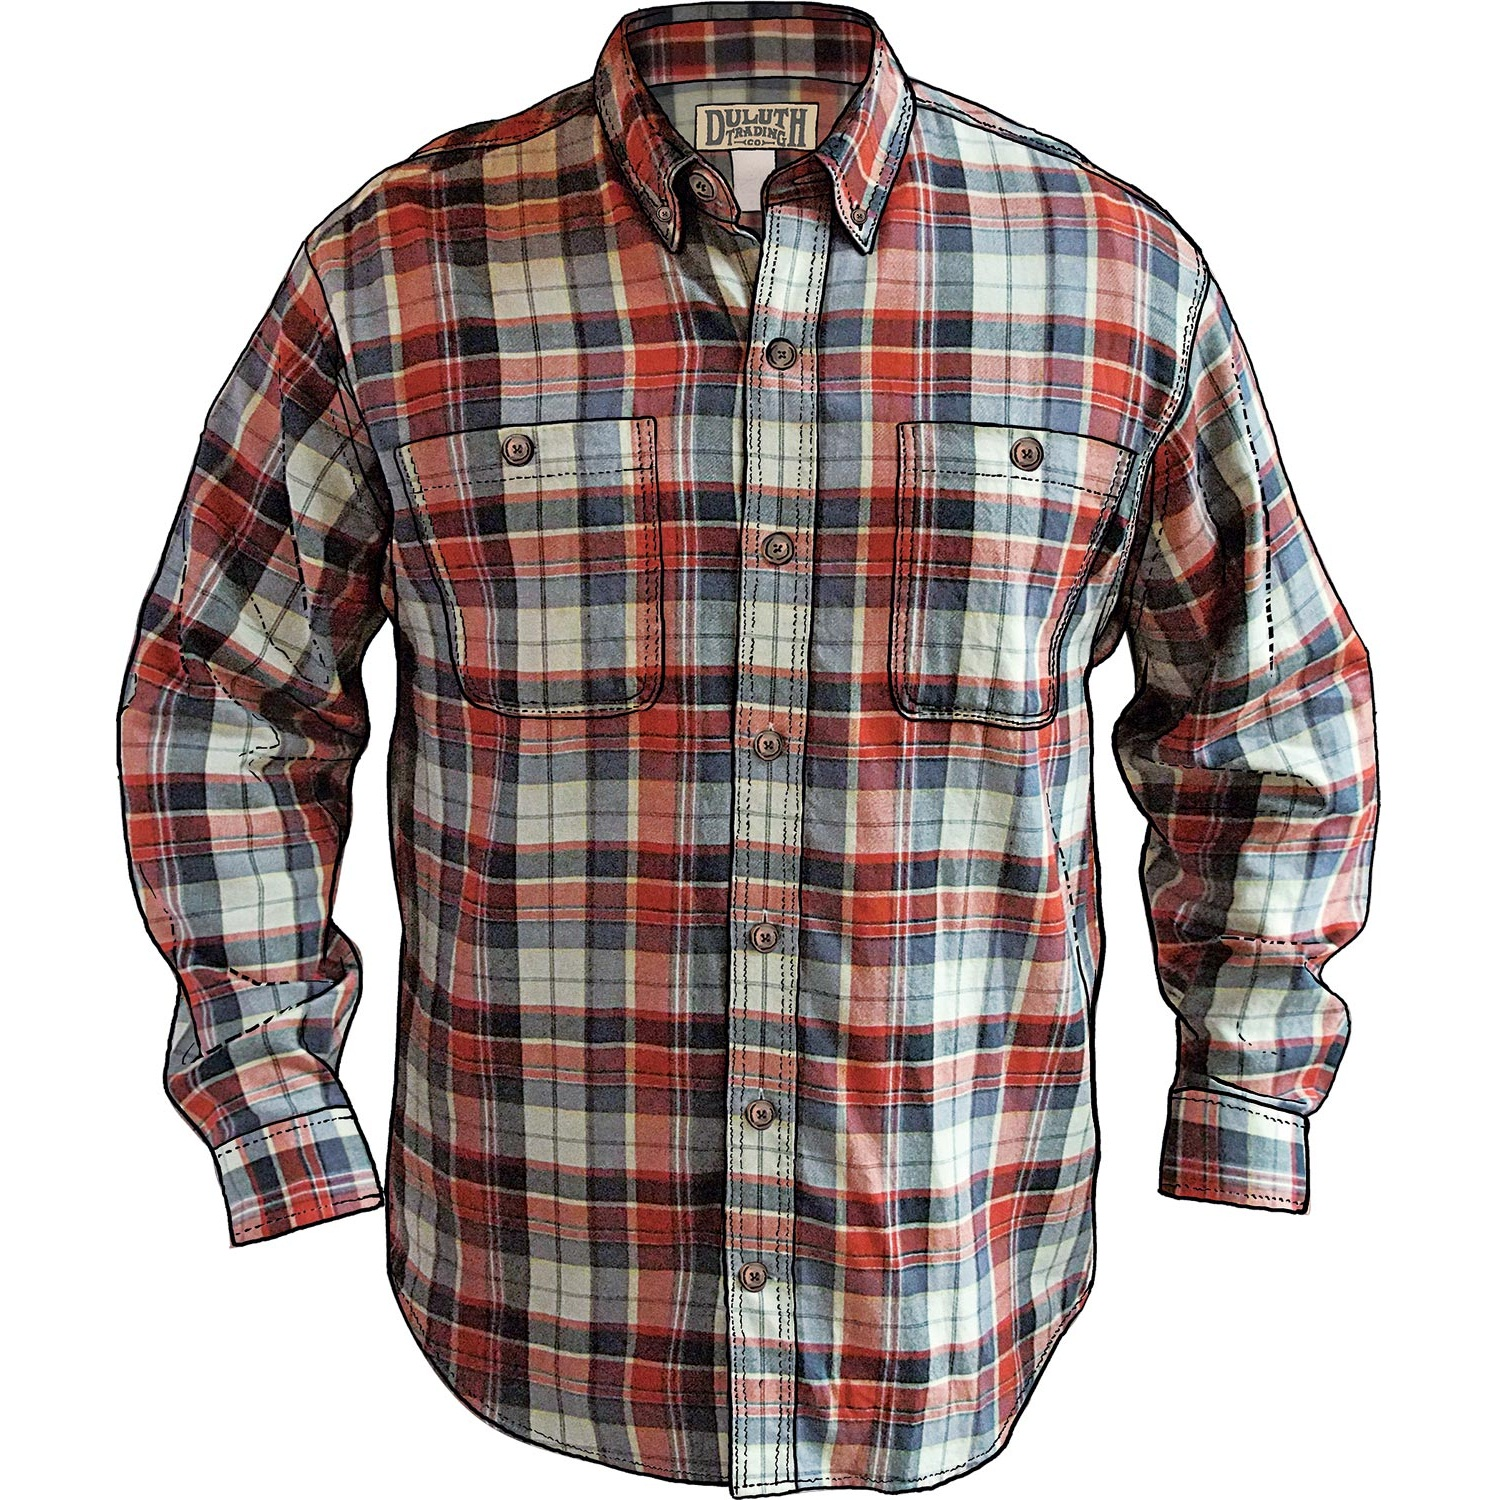 plaid shirts menu0027s lightweight cotton f.o.m. plaid shirt sohxmuc